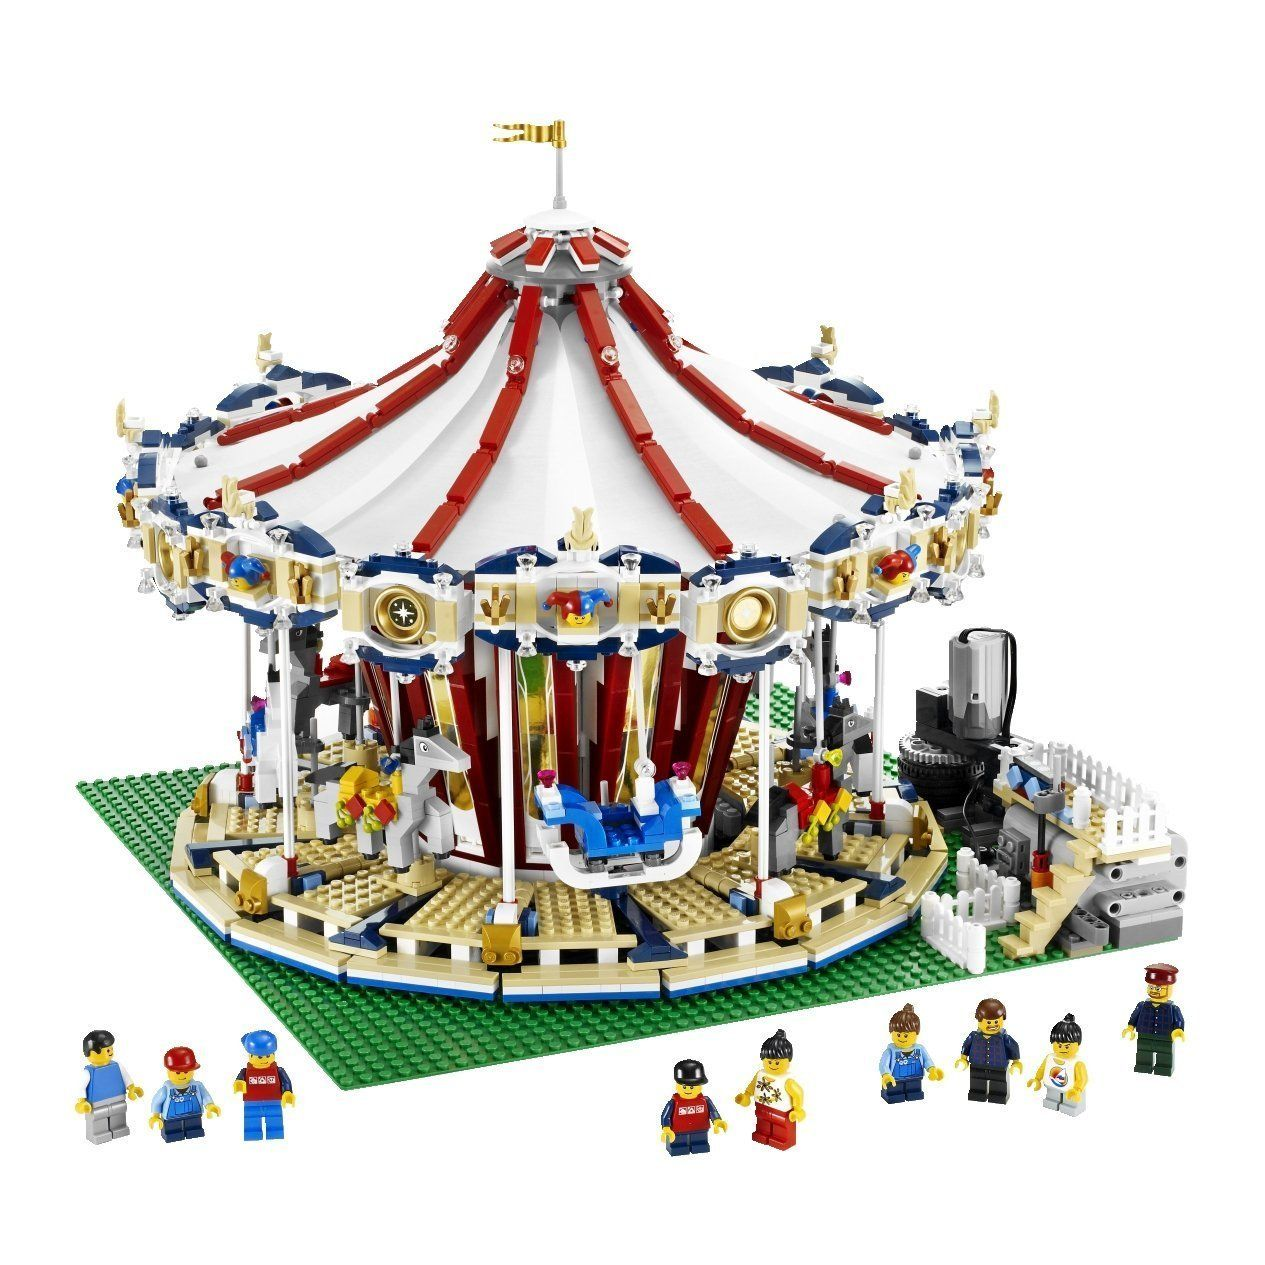 Lego Toys For Boys : Lego for boys and up some amazing sets that will